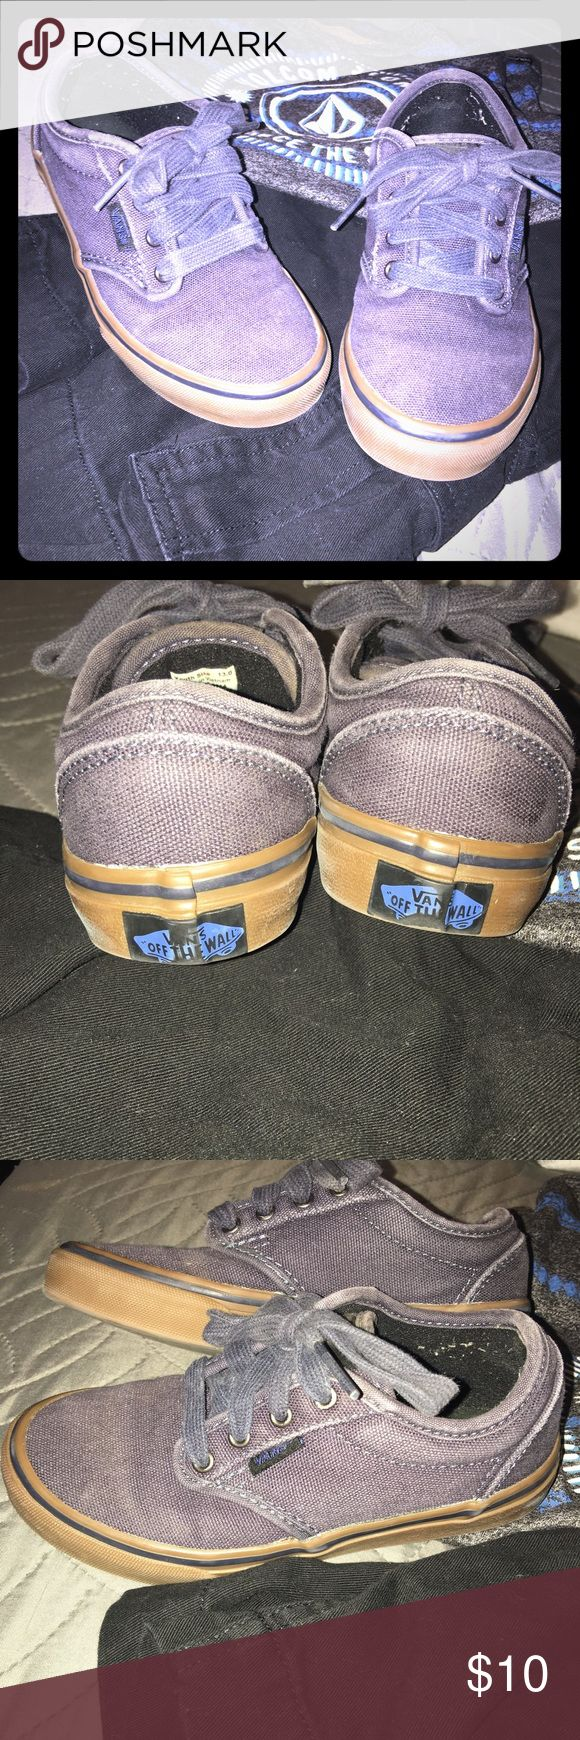 Little Boys Vans Used condition but still have a lot of life left in them. Unfortunately my son outgrew them to fast. Blue-Gray with gum sole. Vans Shoes Sneakers